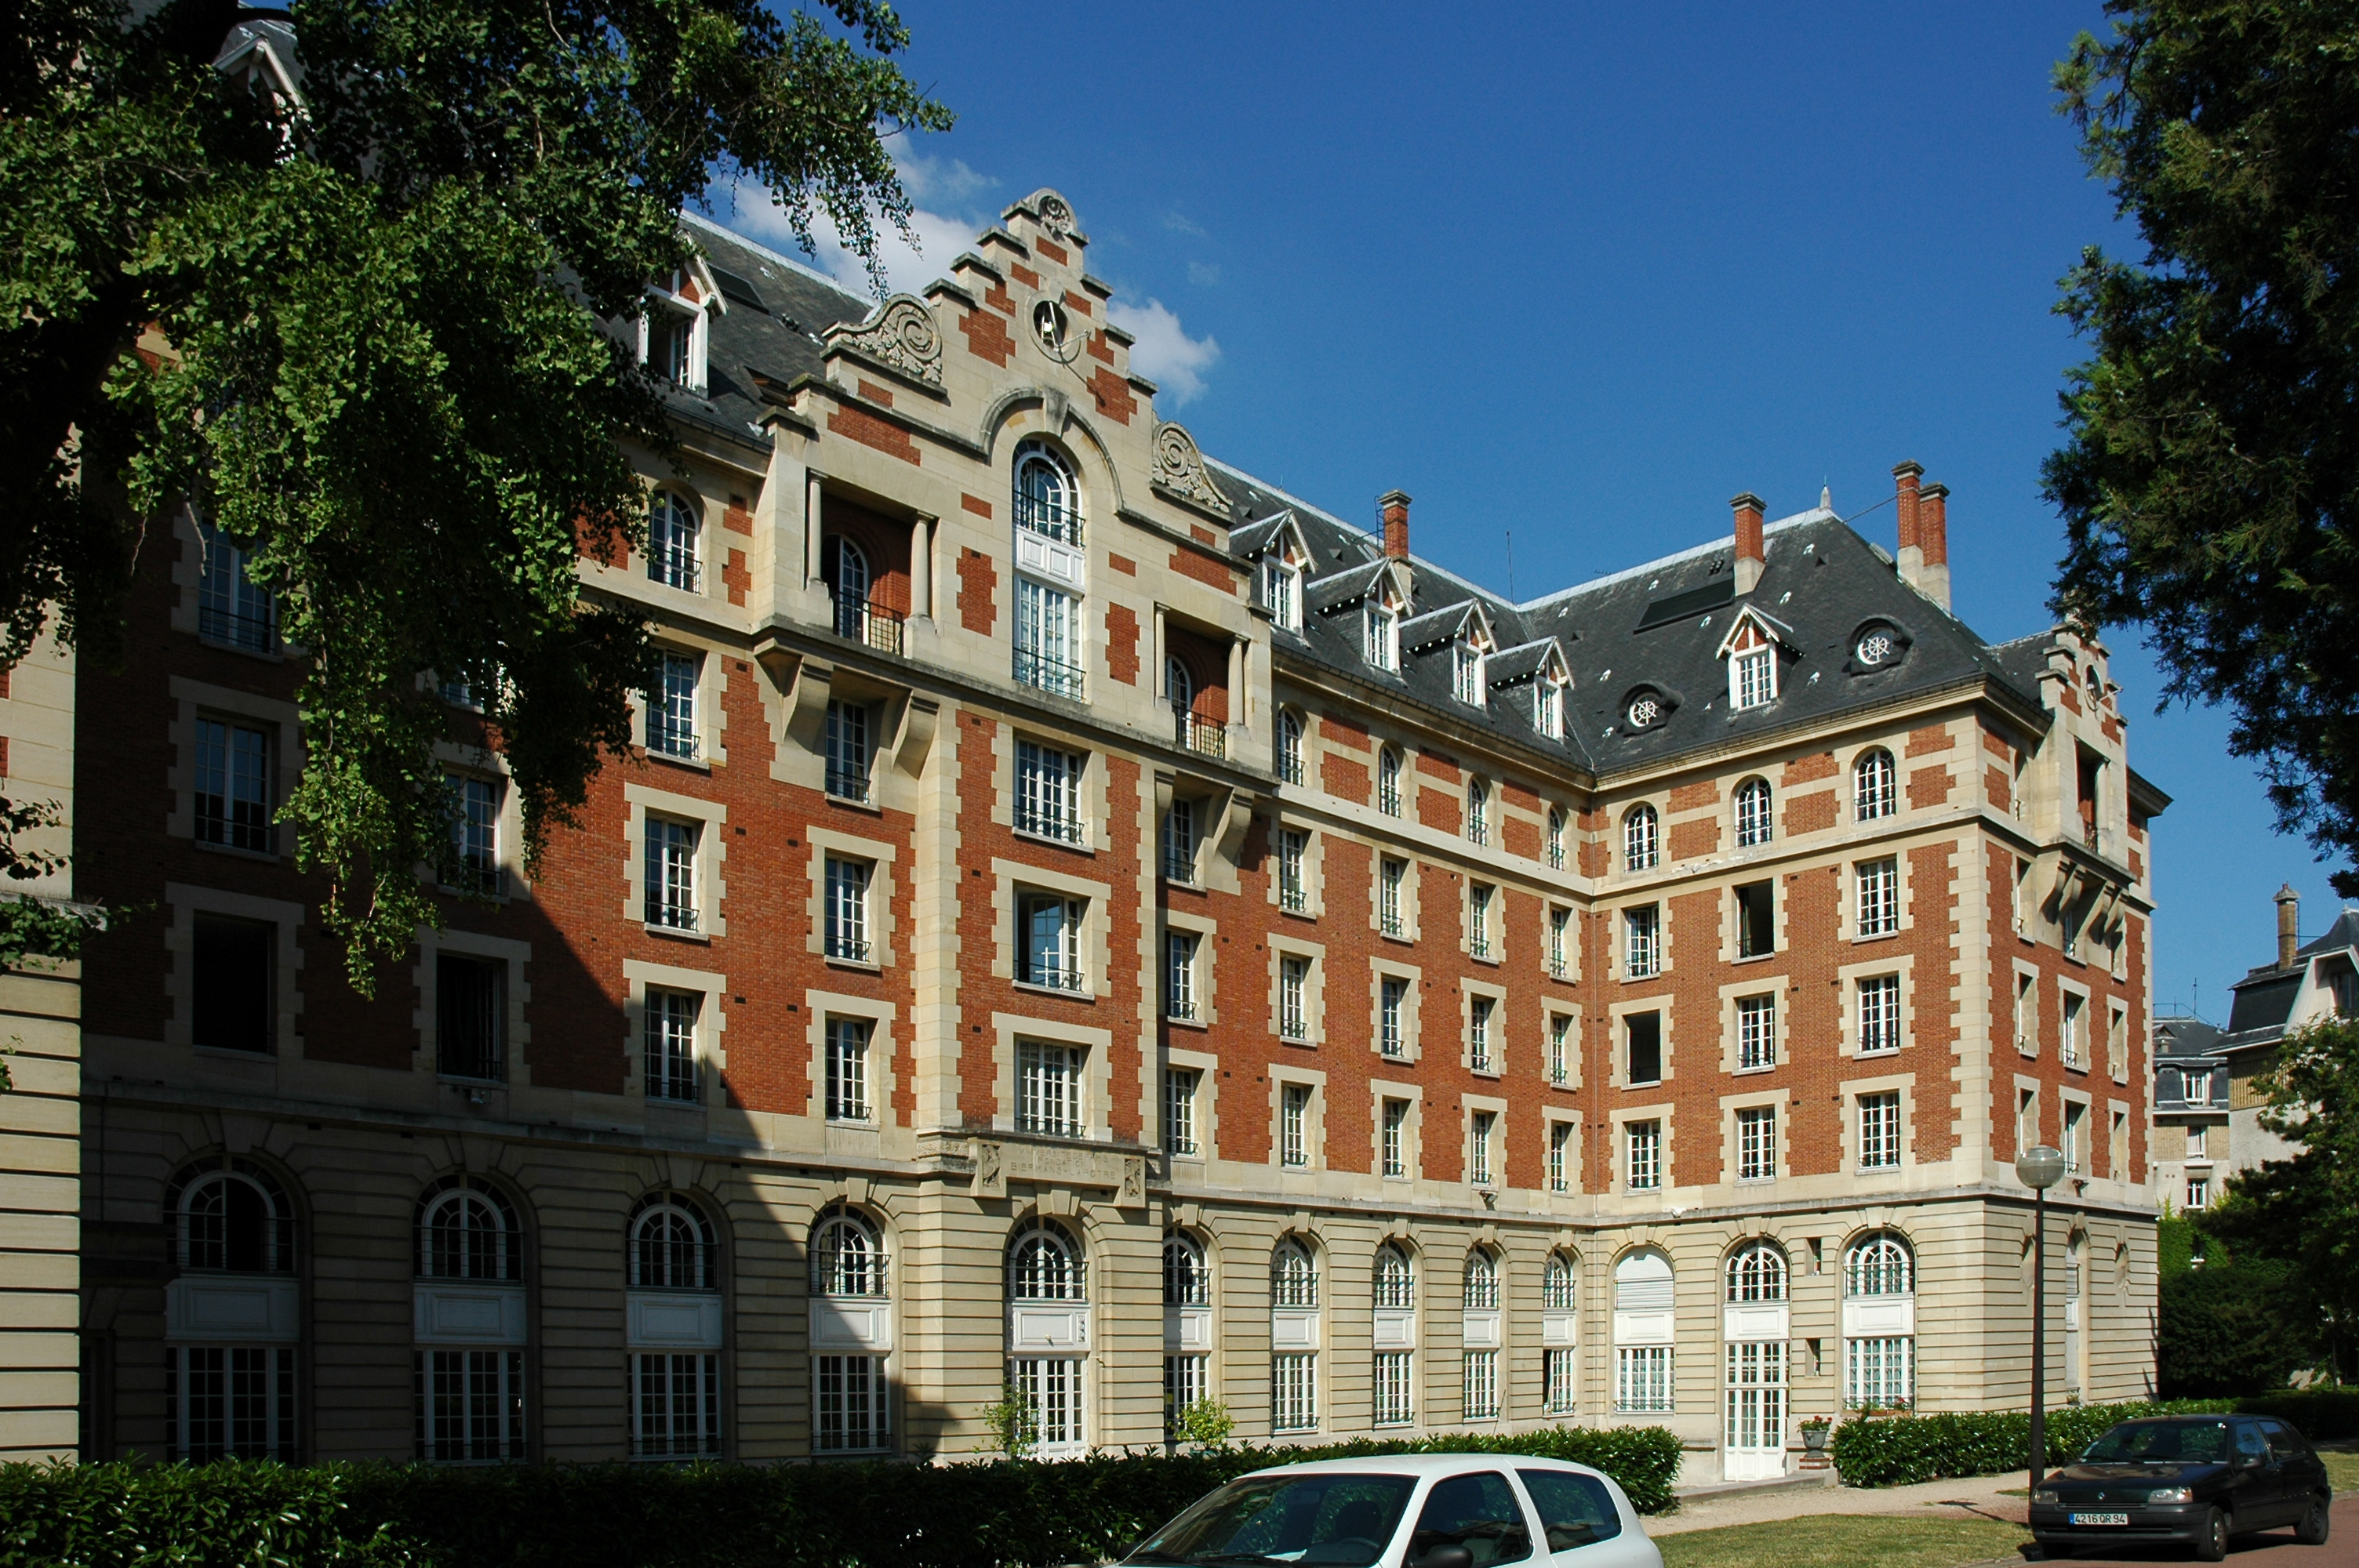 File:France Paris Cite Universitaire Maison Belgique 01.JPG ...